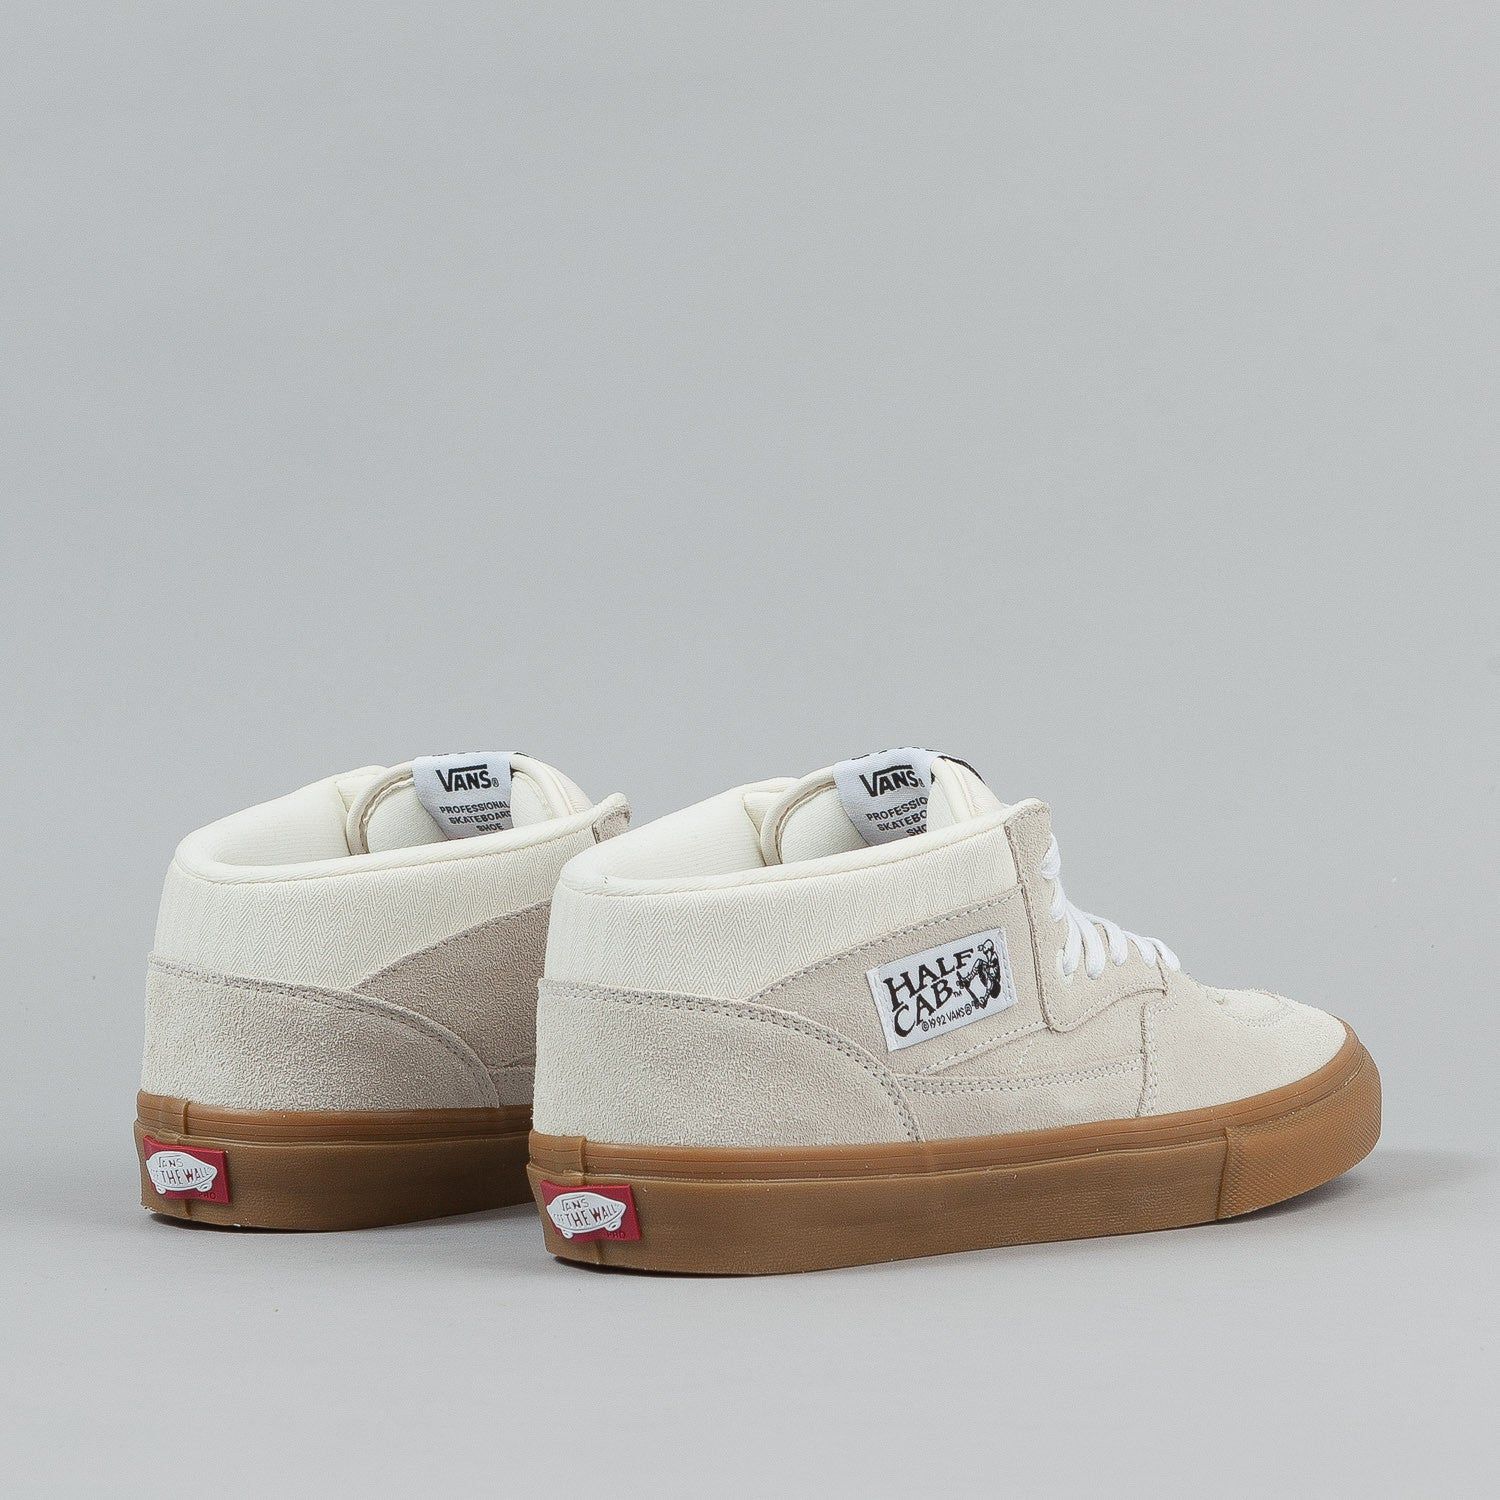 Vans Half Cab Pro Shoes - White / Gum